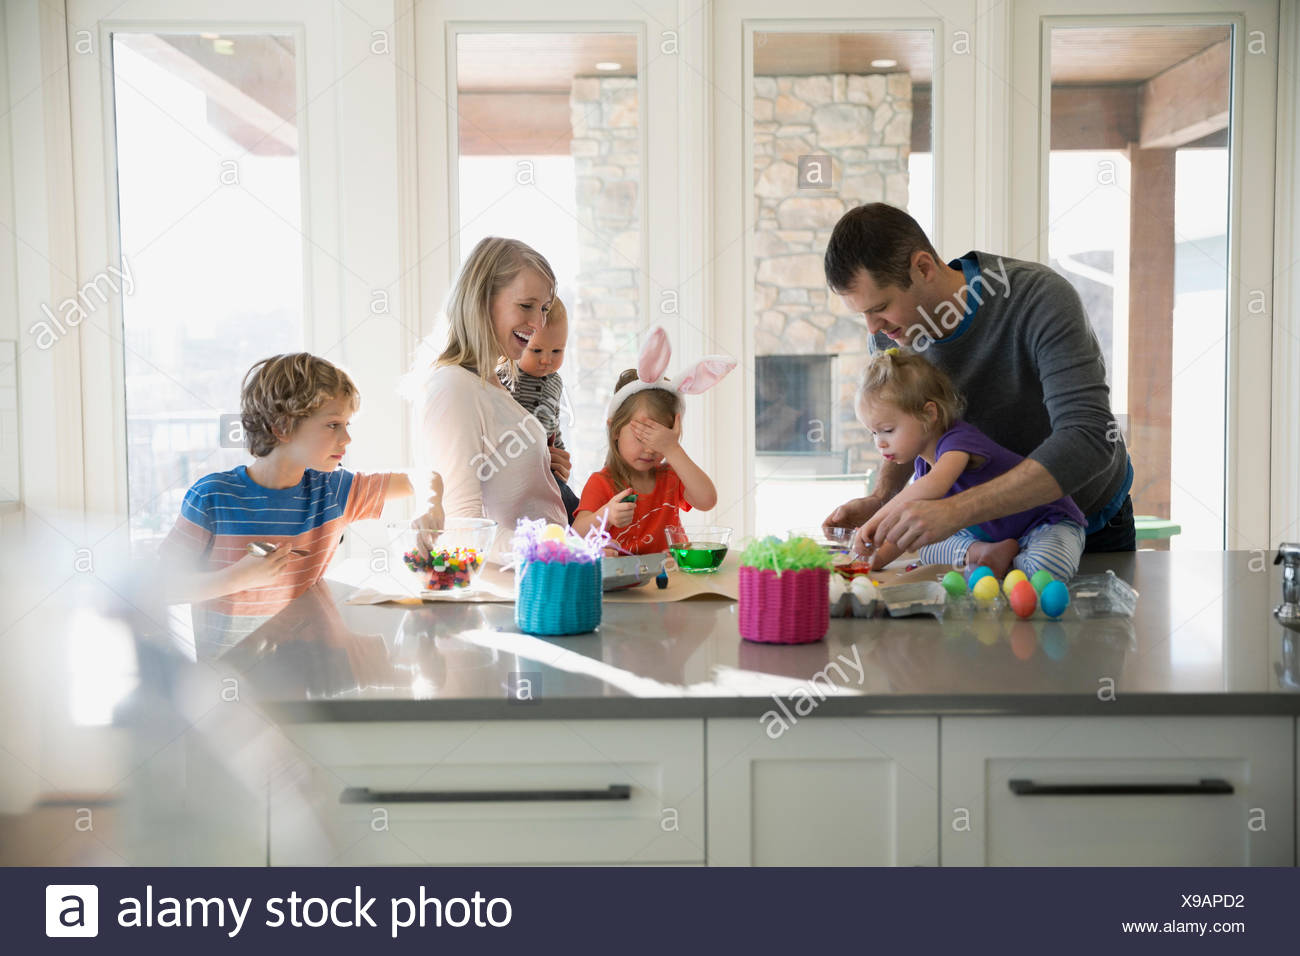 Egg Dye Stockfotos & Egg Dye Bilder - Alamy